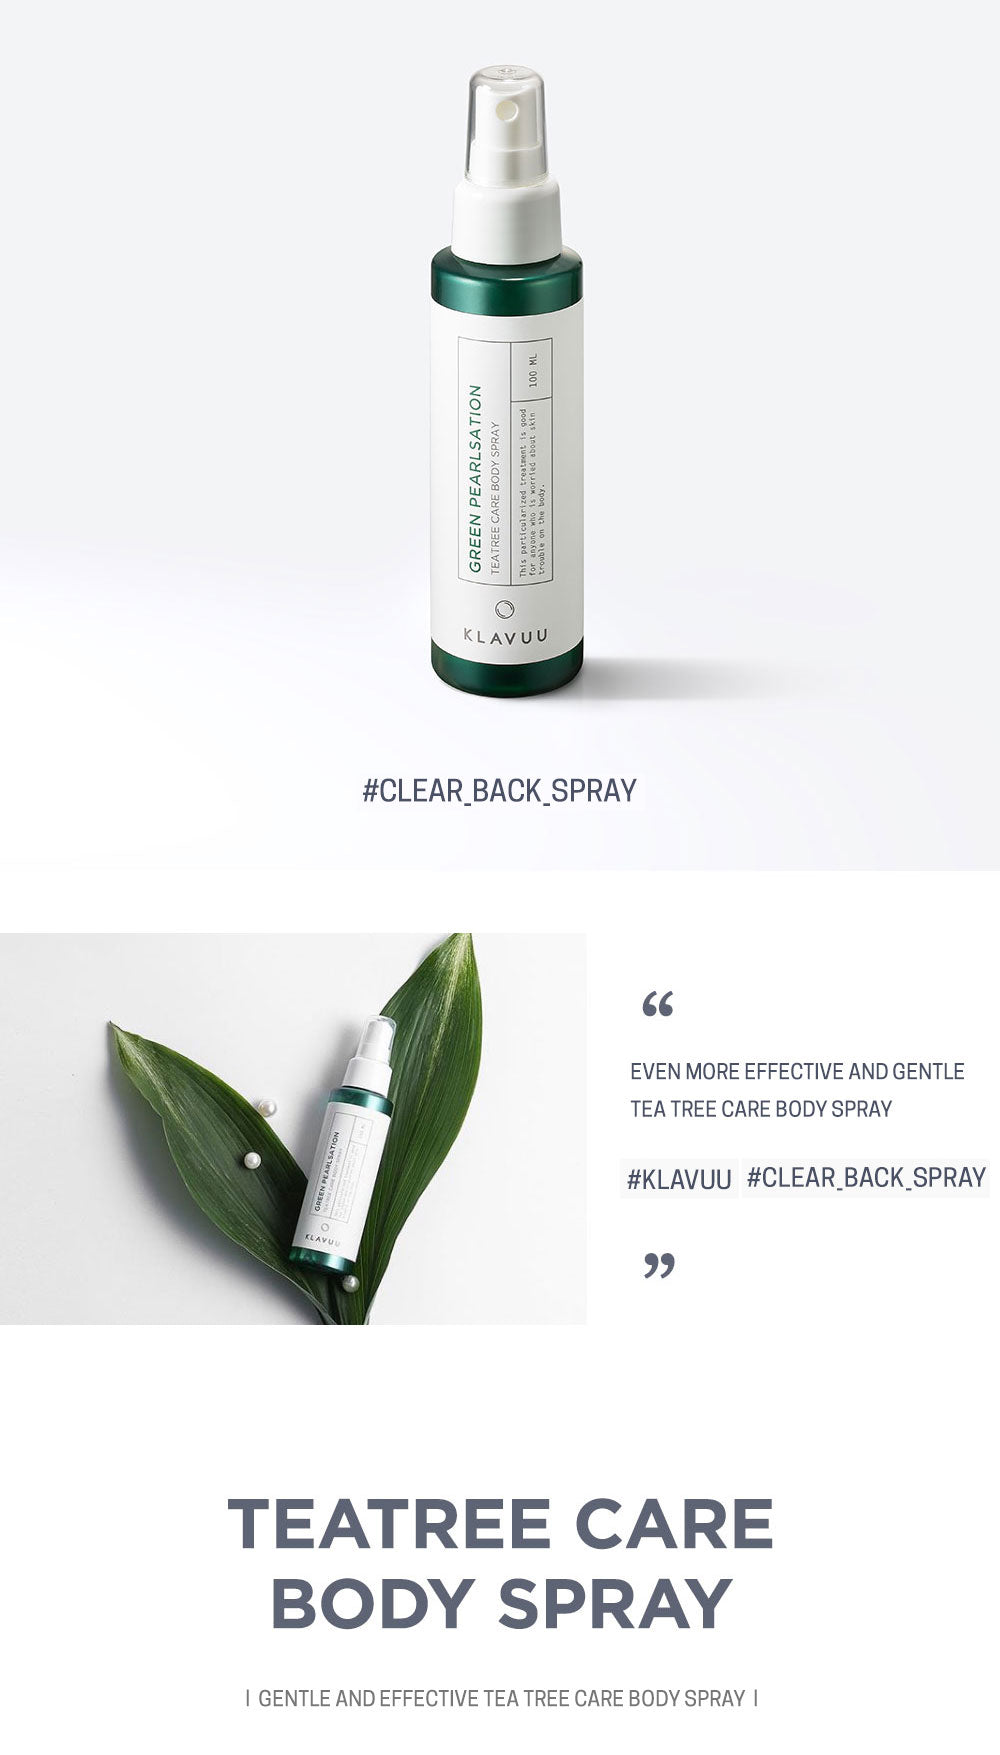 Klavuu-body-spray-2.jpg